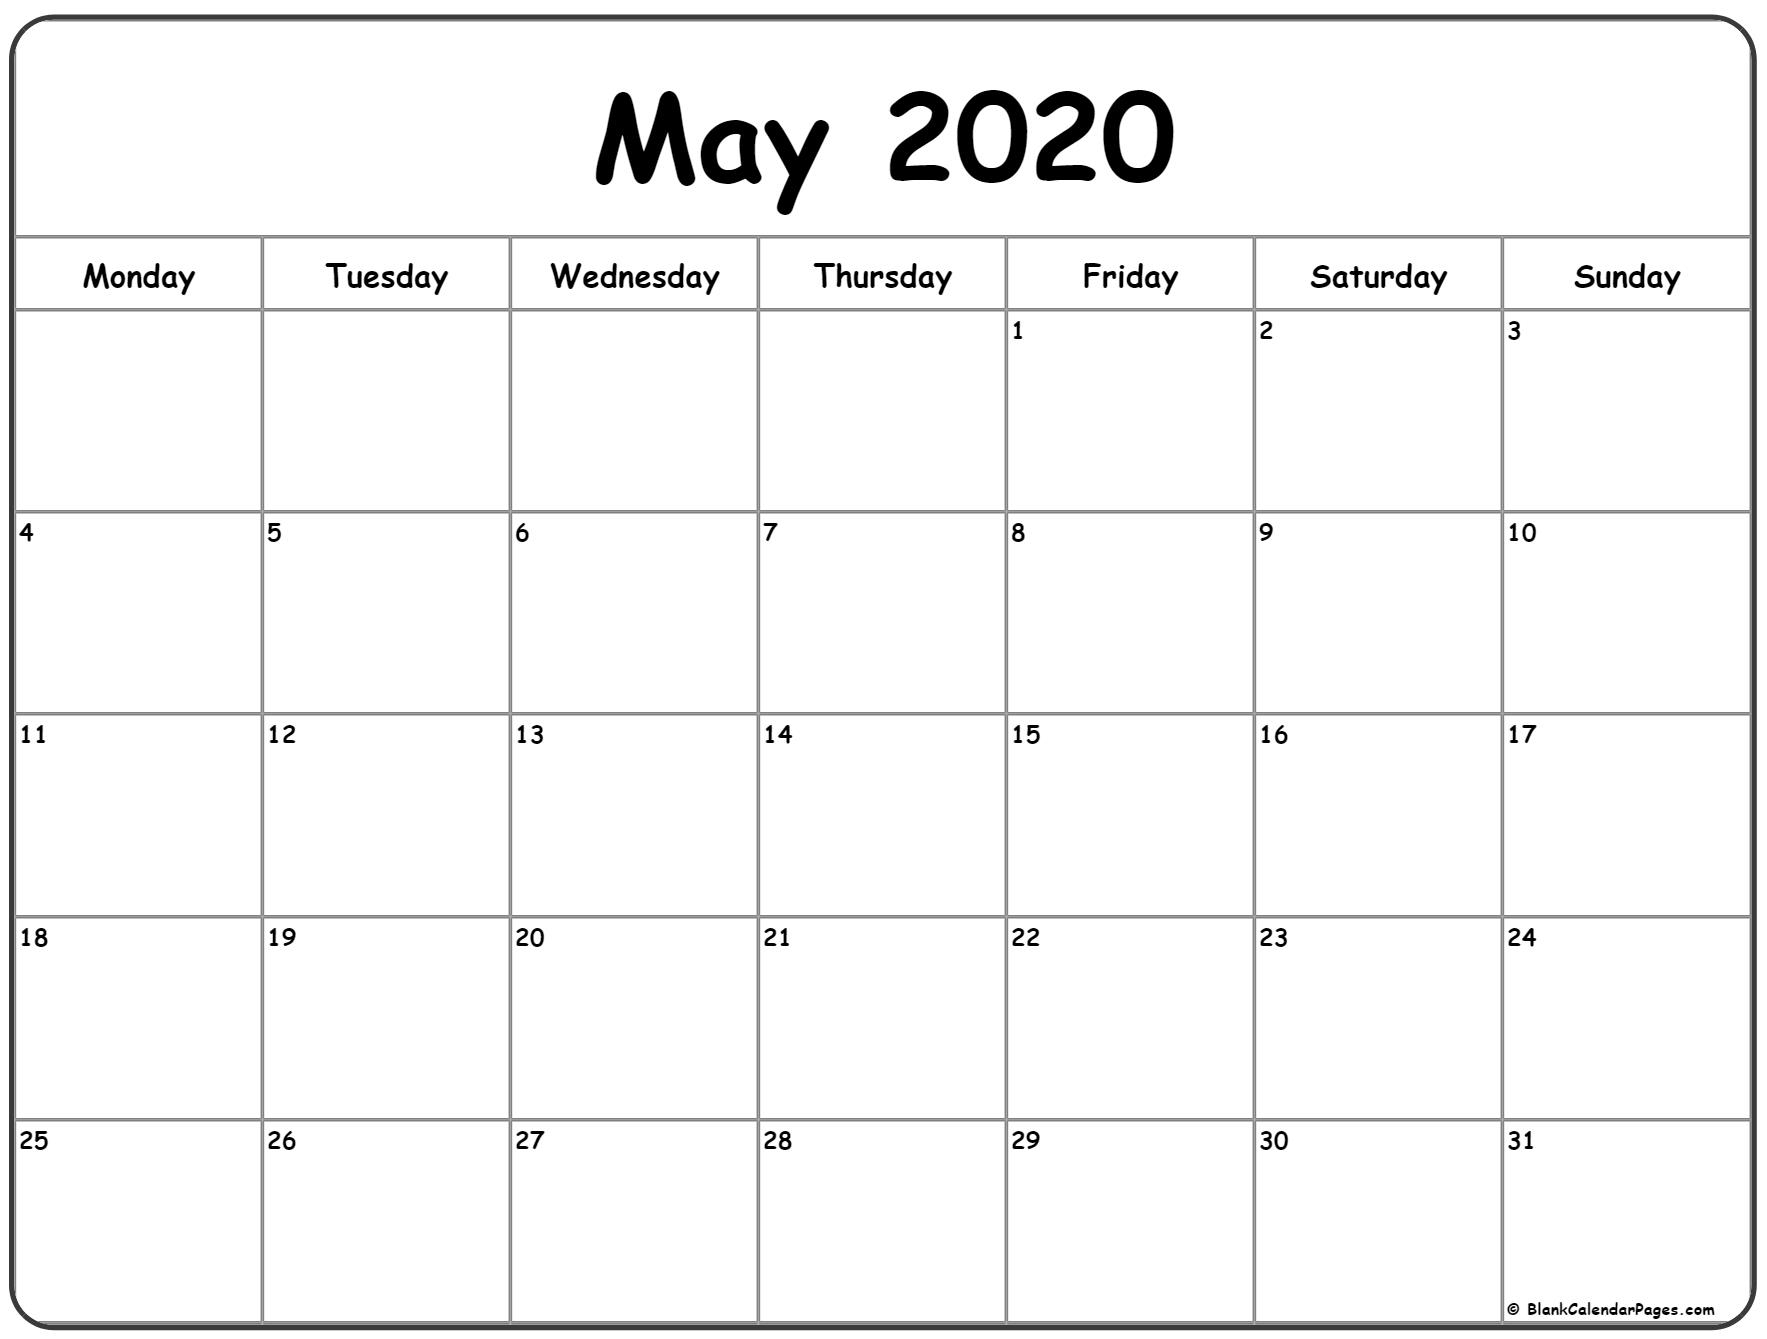 May 2020 Monday Calendar | Monday To Sunday for 2020 Calendar Starts On Monday